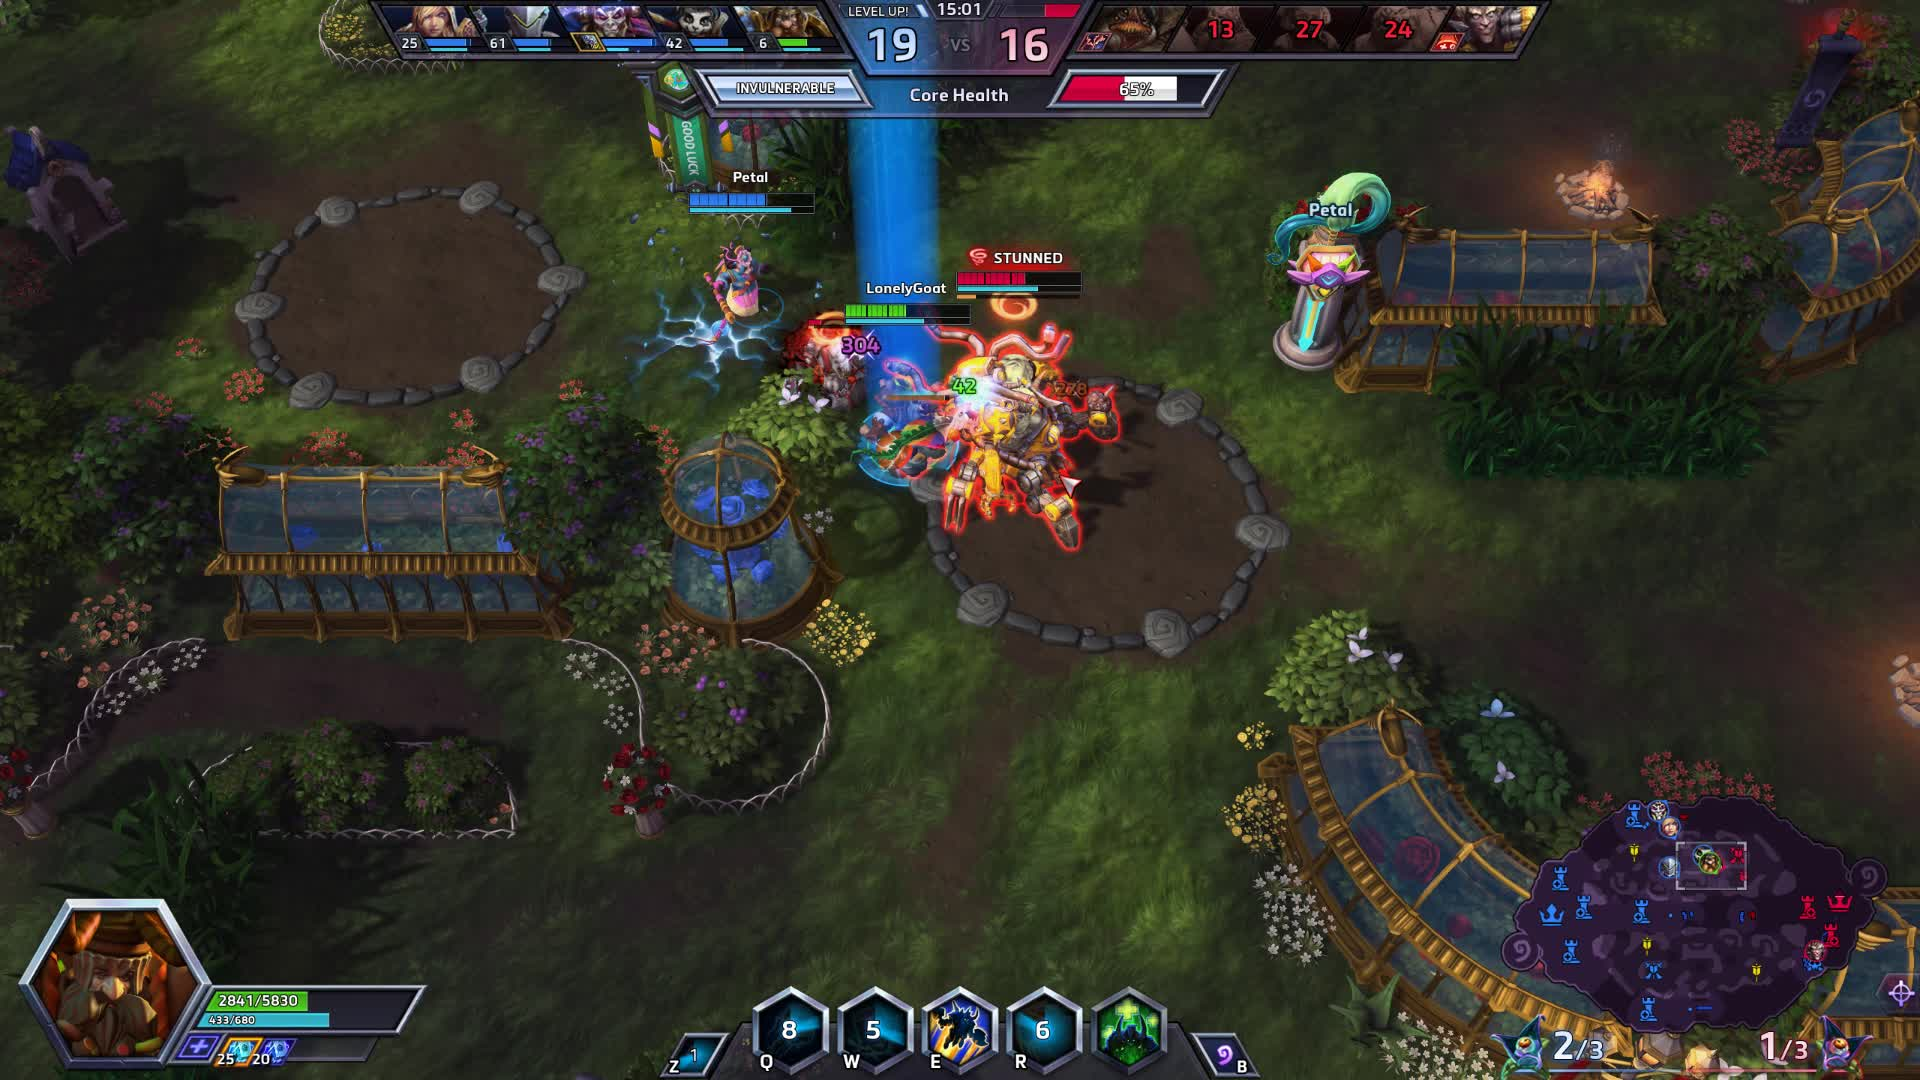 heroesofthestorm, vlc-record-2019-02-08-20h19m47s-Heroes of the Storm 2019.01.23 - 22.14.45.02.DVR.mp4- GIFs